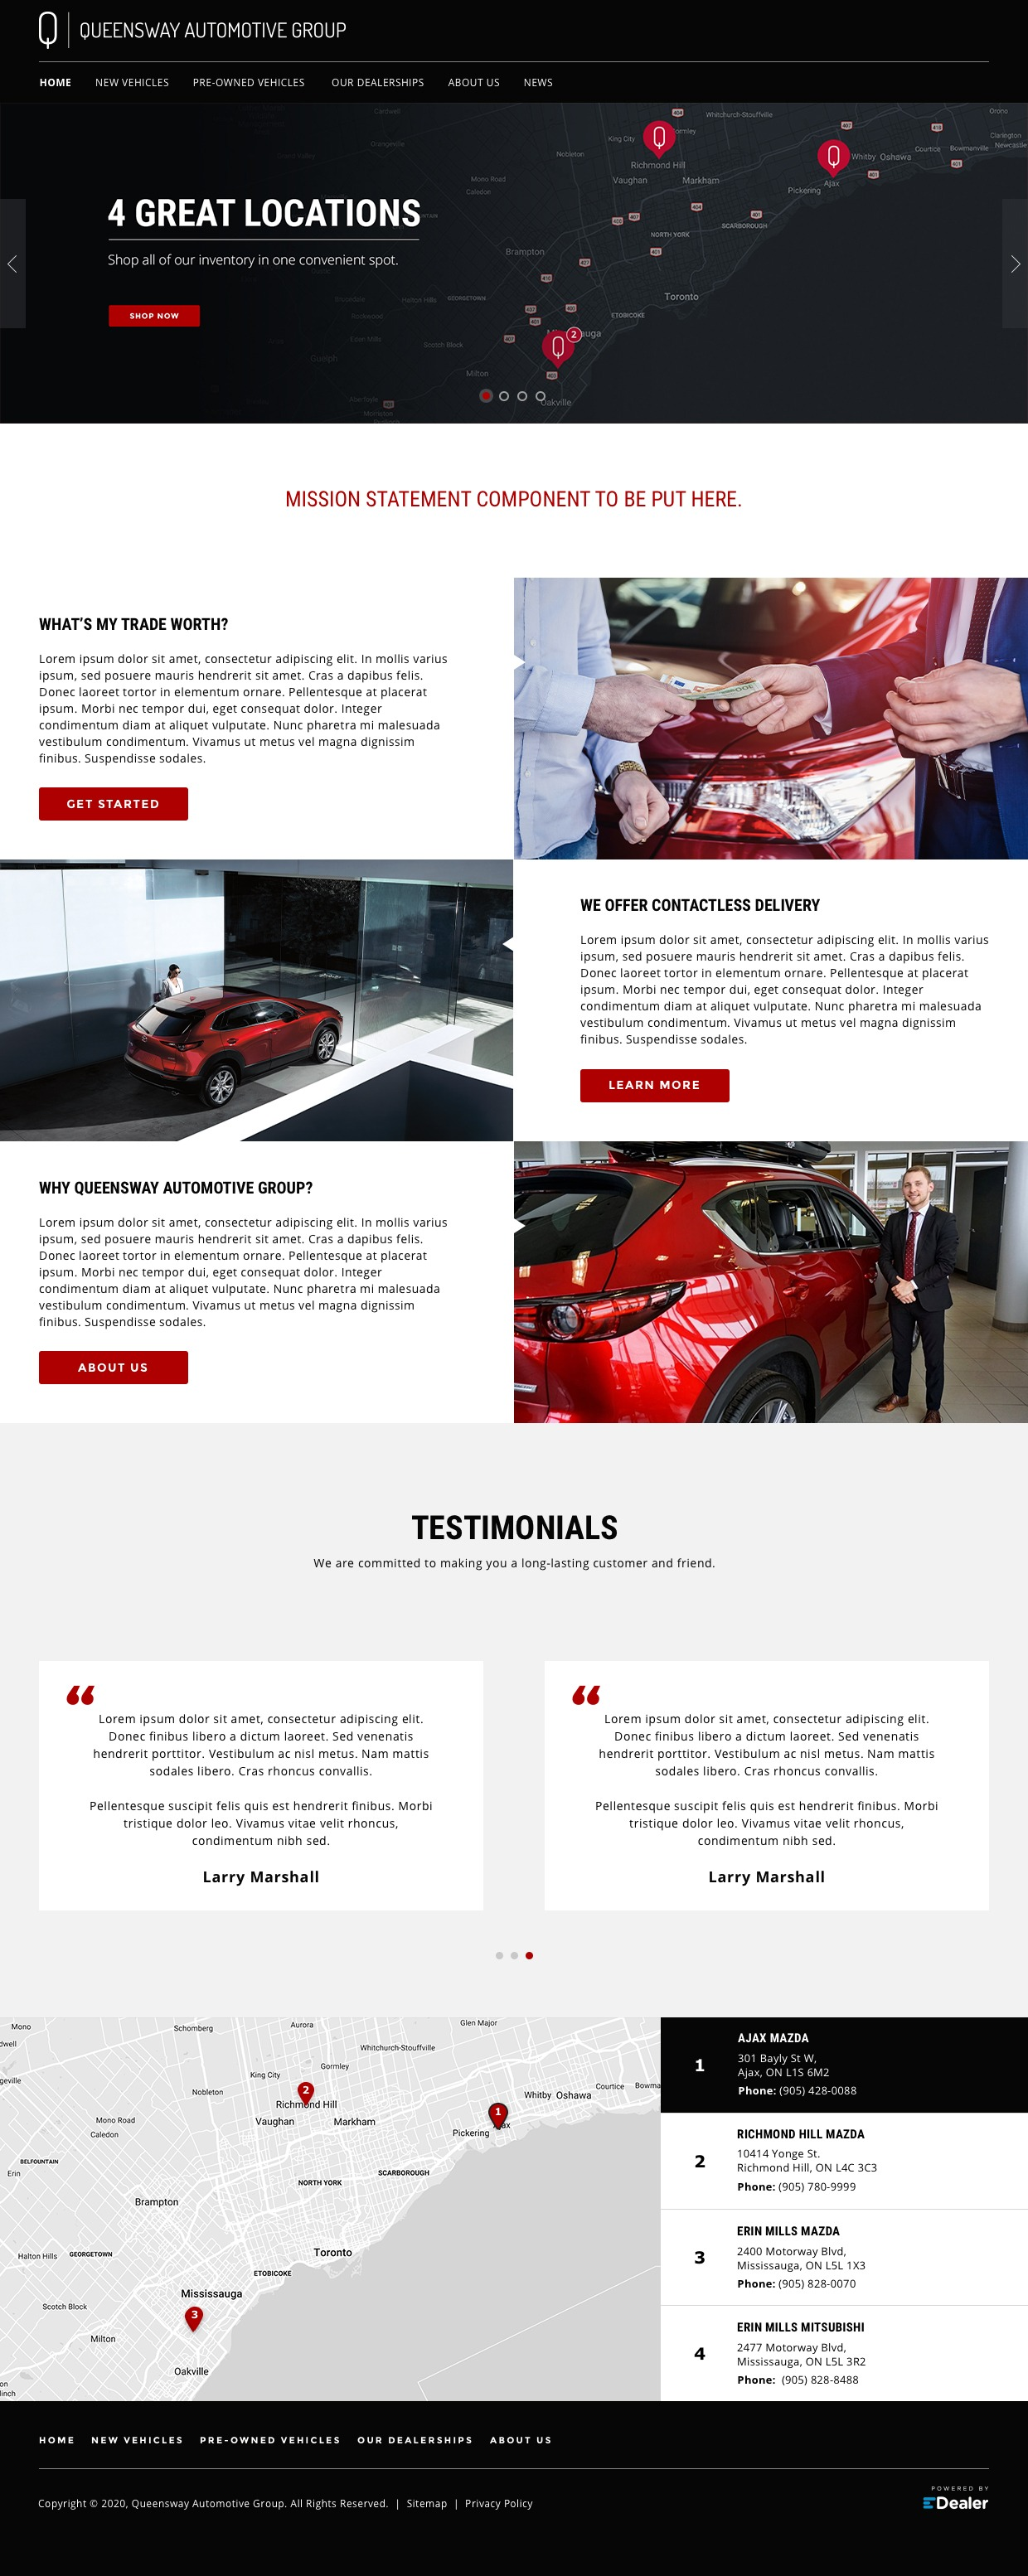 Queensway Automotive Group